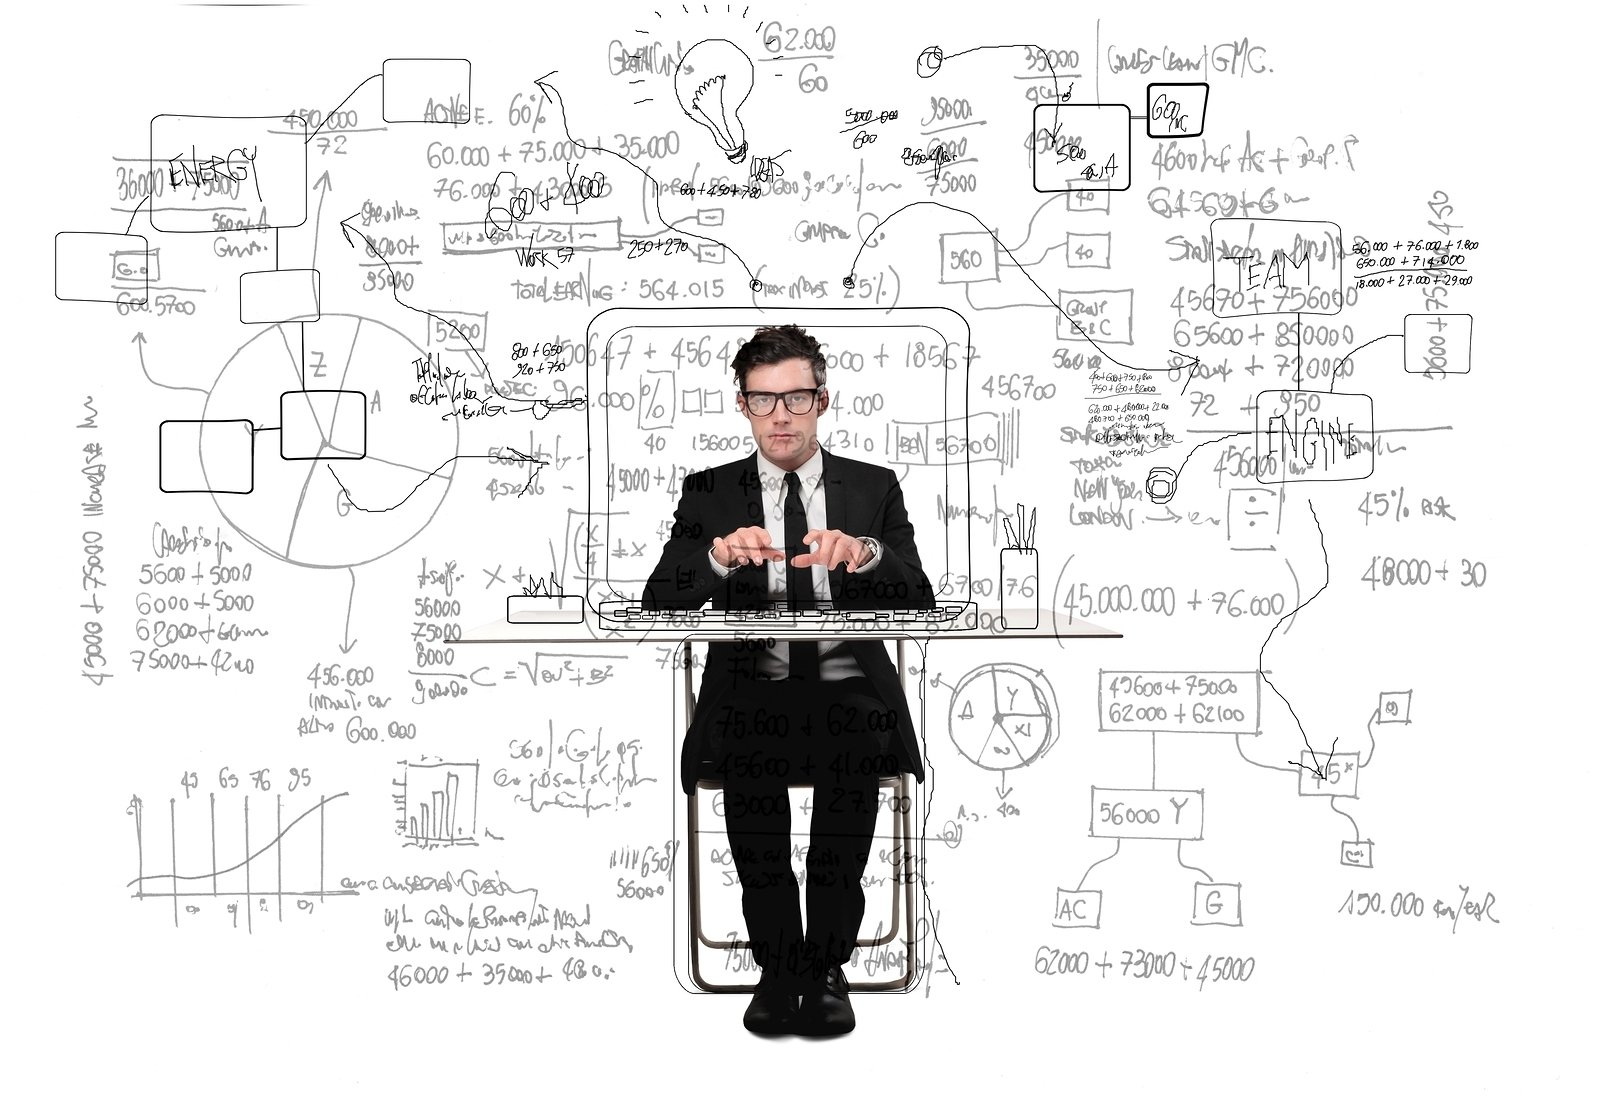 10 Stylish Steps To Patent An Idea how to patent a website idea intellectual pats 12 2020